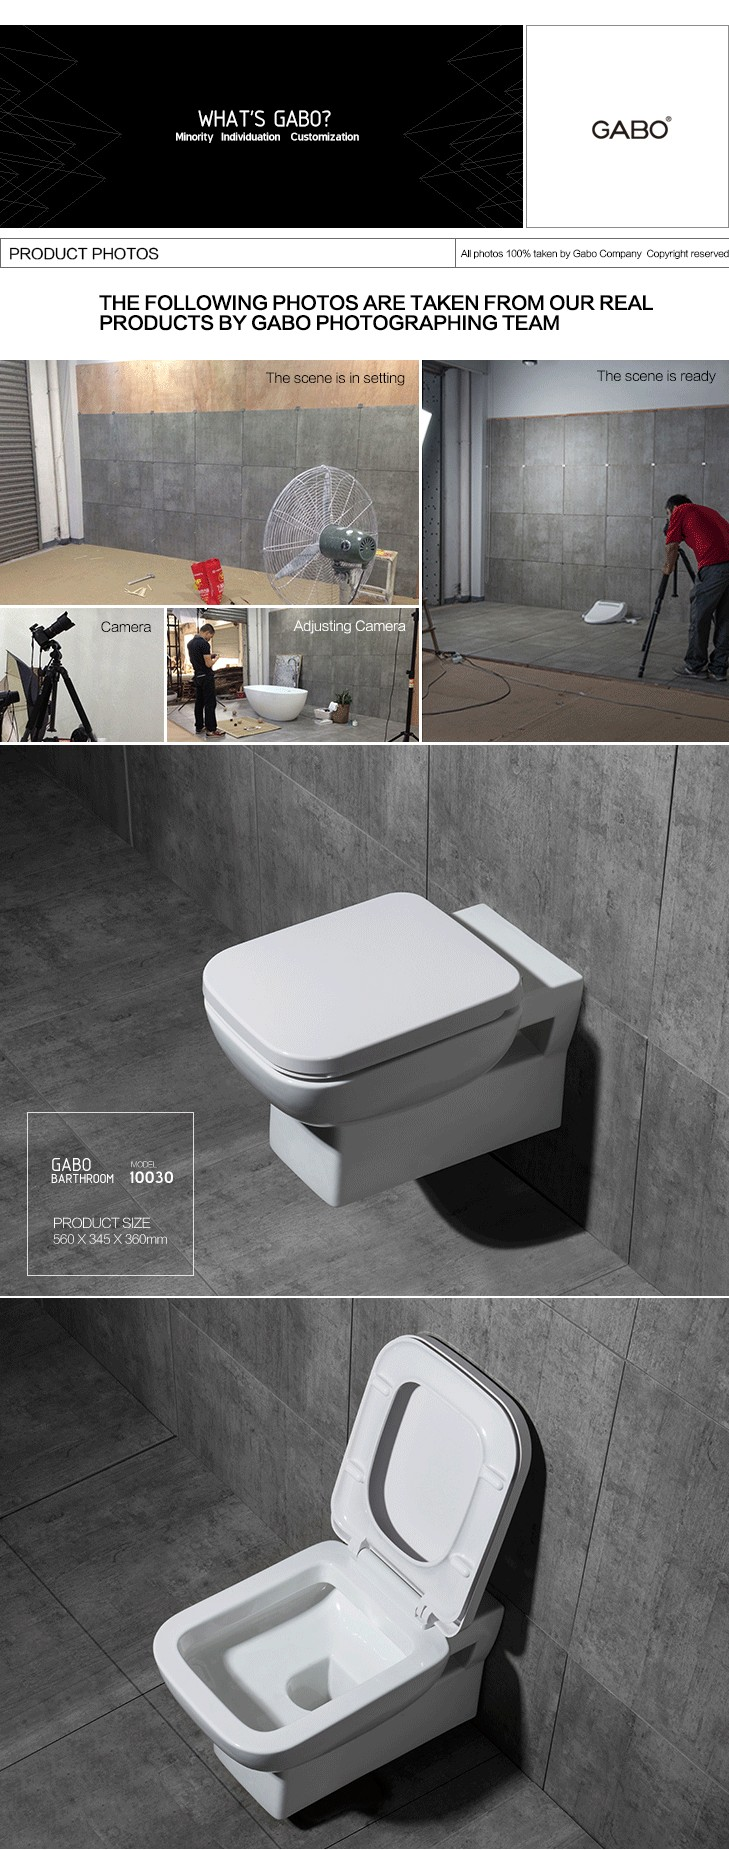 Wall Mounted P-trap Toilets for Boats